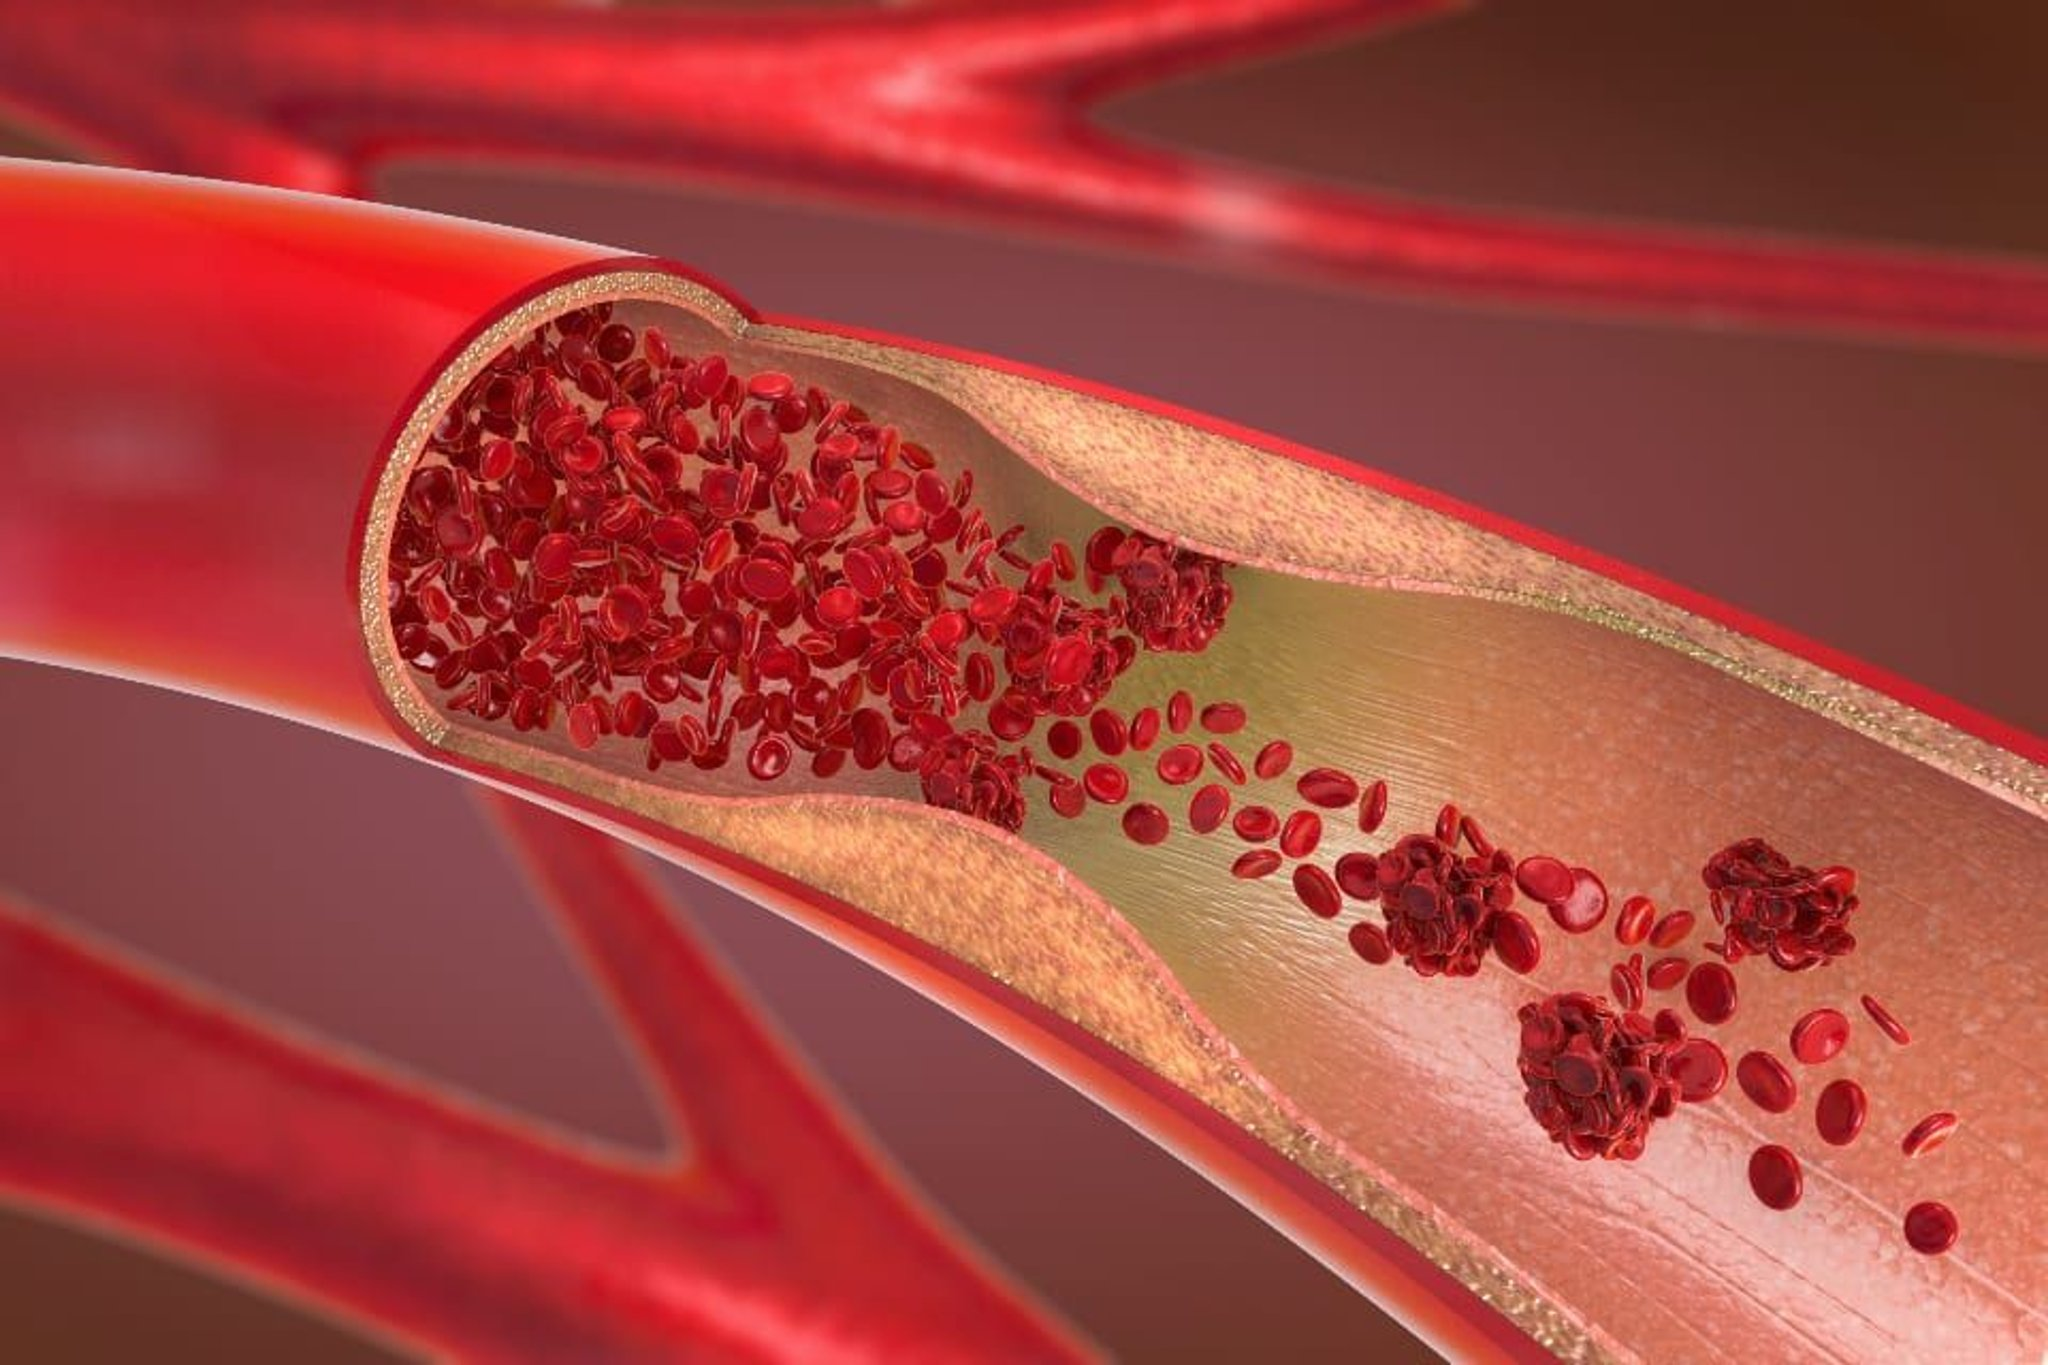 Here's how to make your arteries younger according to medical experts